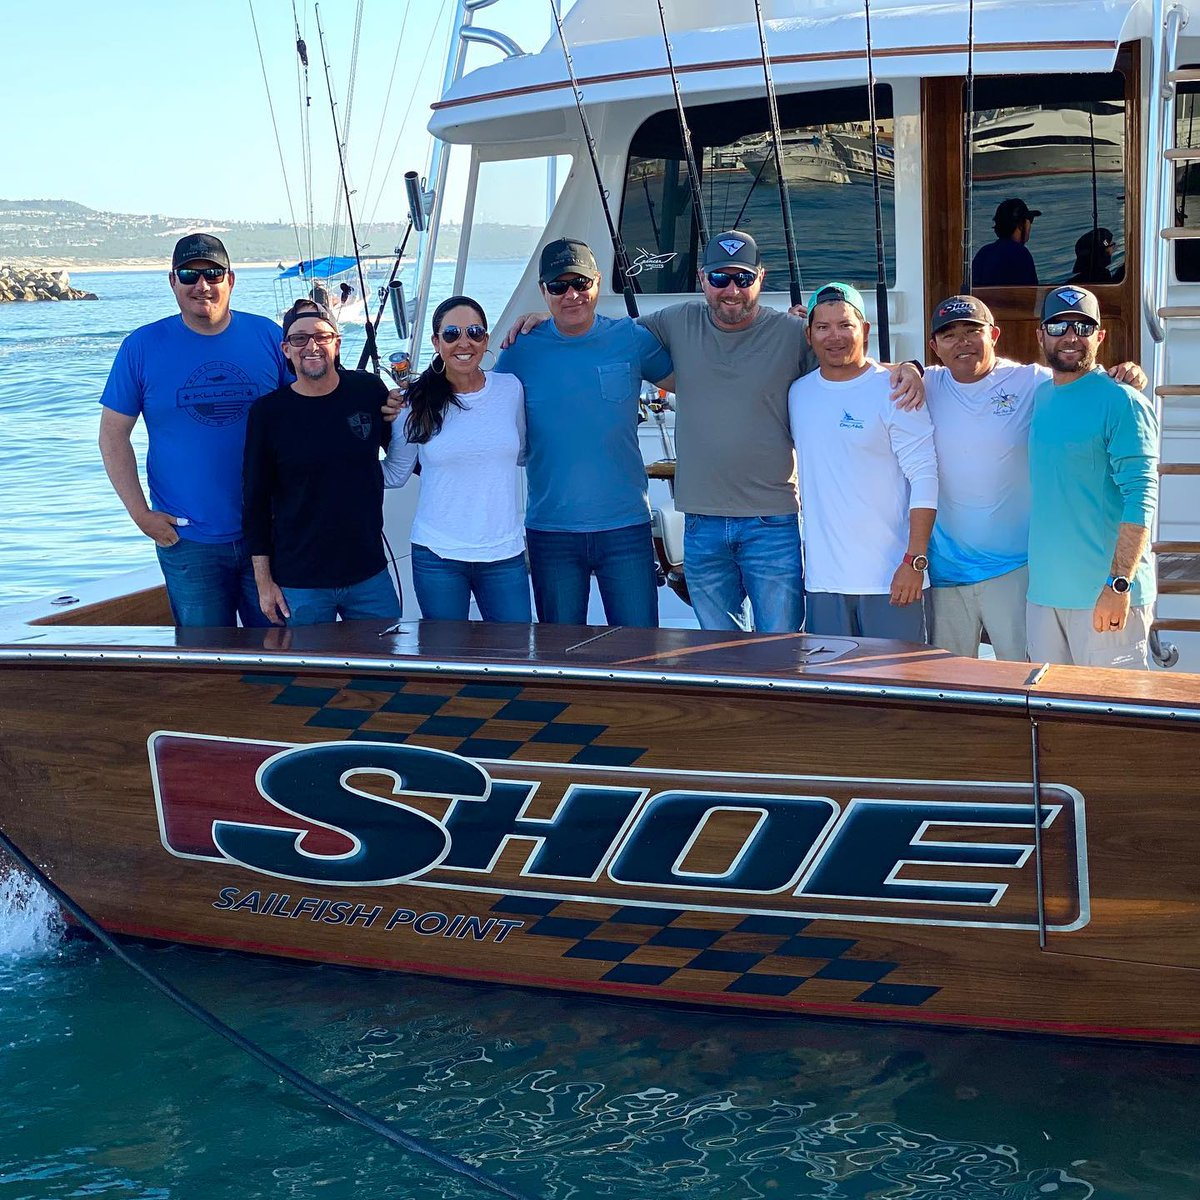 Mag Bay, MX - Shoe released 467 Striped Marlin over 5-Days.